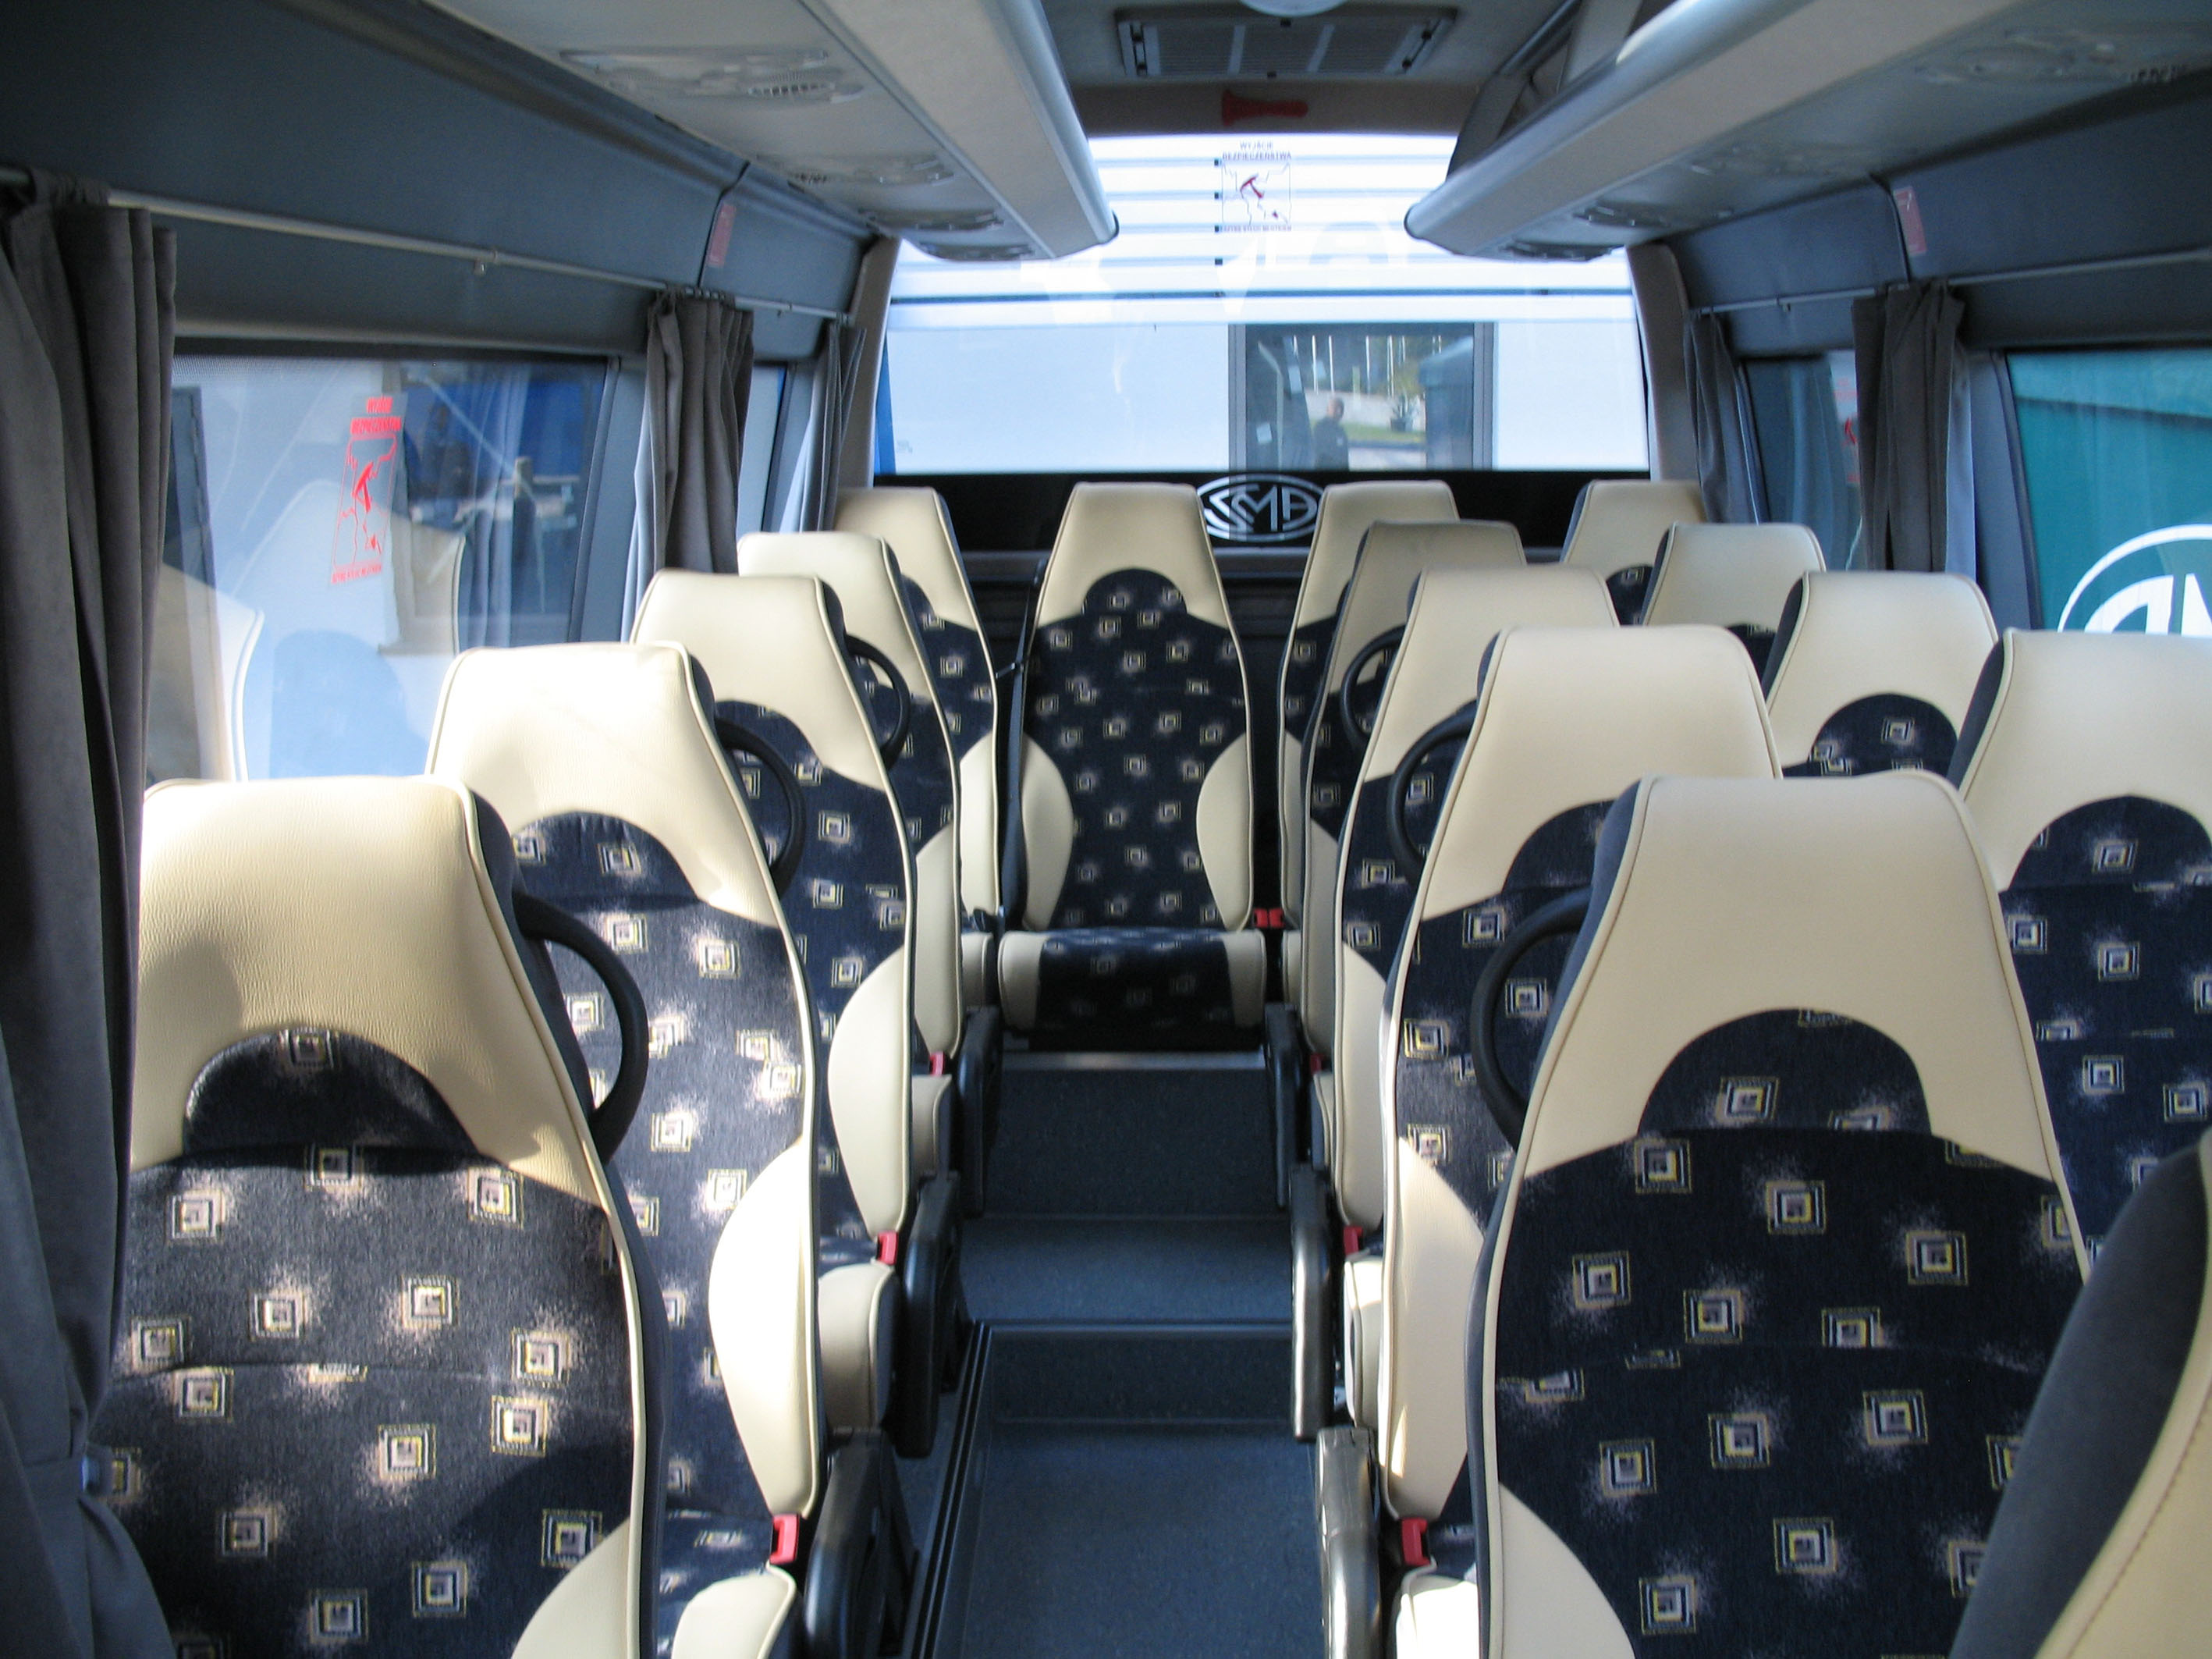 File:AMZ Iveco Daily interior - rear.jpg - Wikimedia Commons